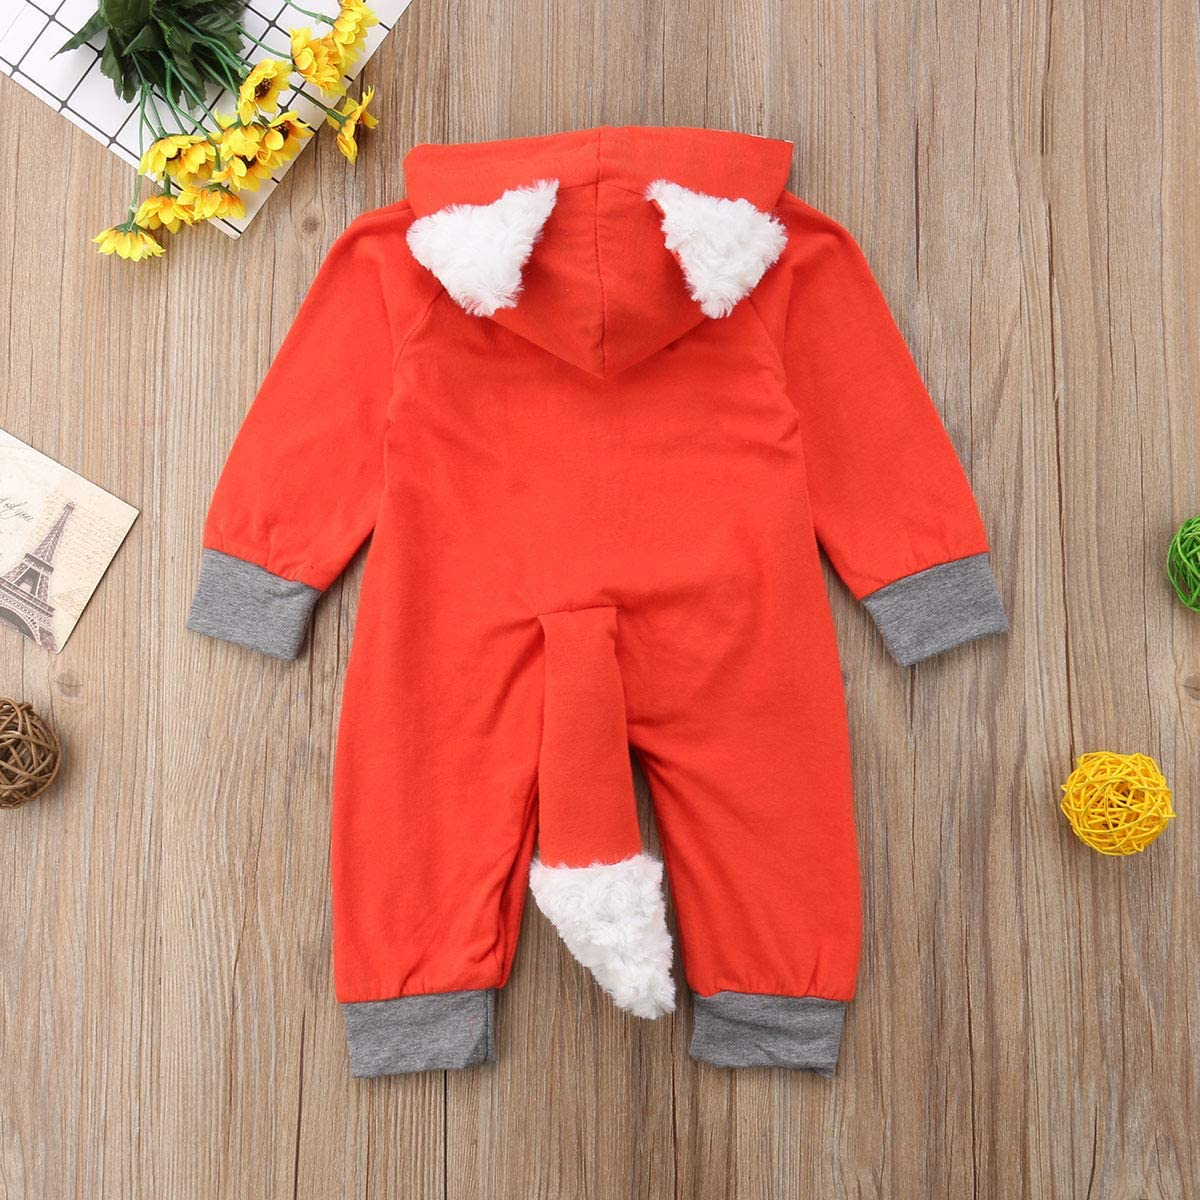 Lamuusaa Newborn Toddler Baby Girl//Boy Halloween Clothes Fox Long Sleeve Jumpsuit Bodysuit Hooded Romper Fall Winter Outfit